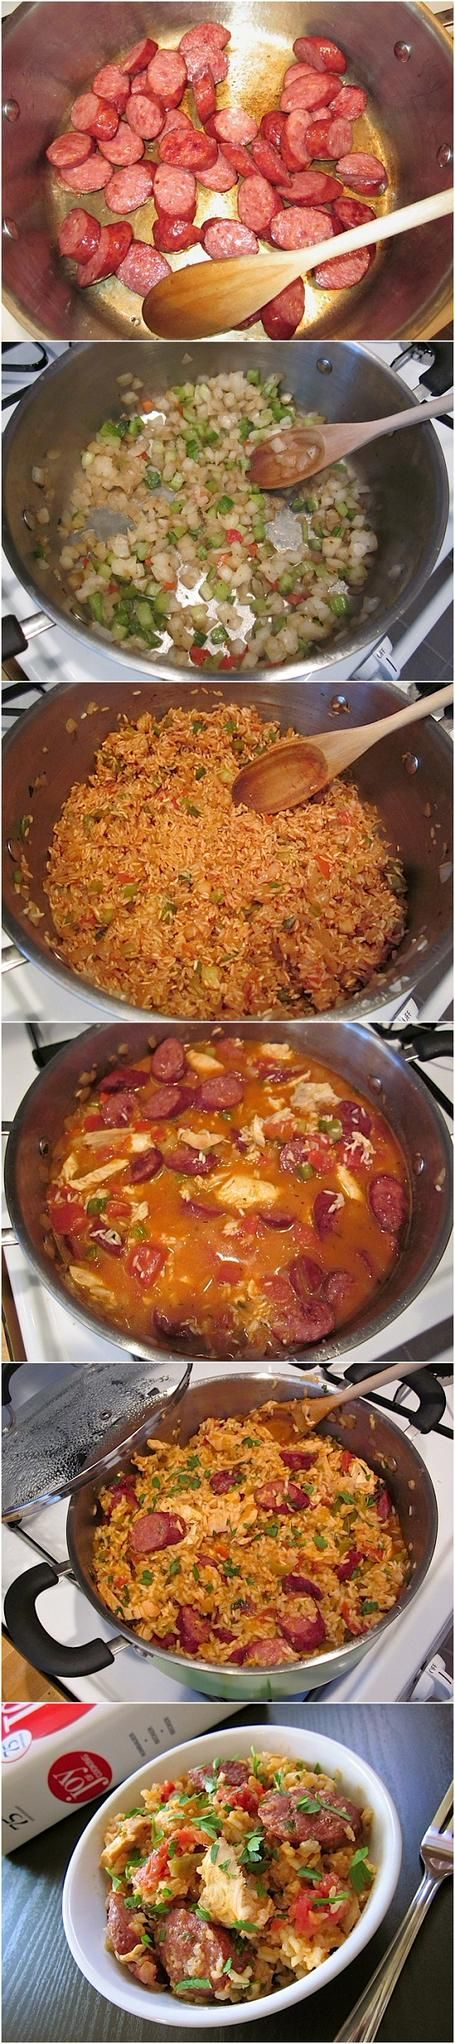 Jambalaya Recipe-use leftover shrimp